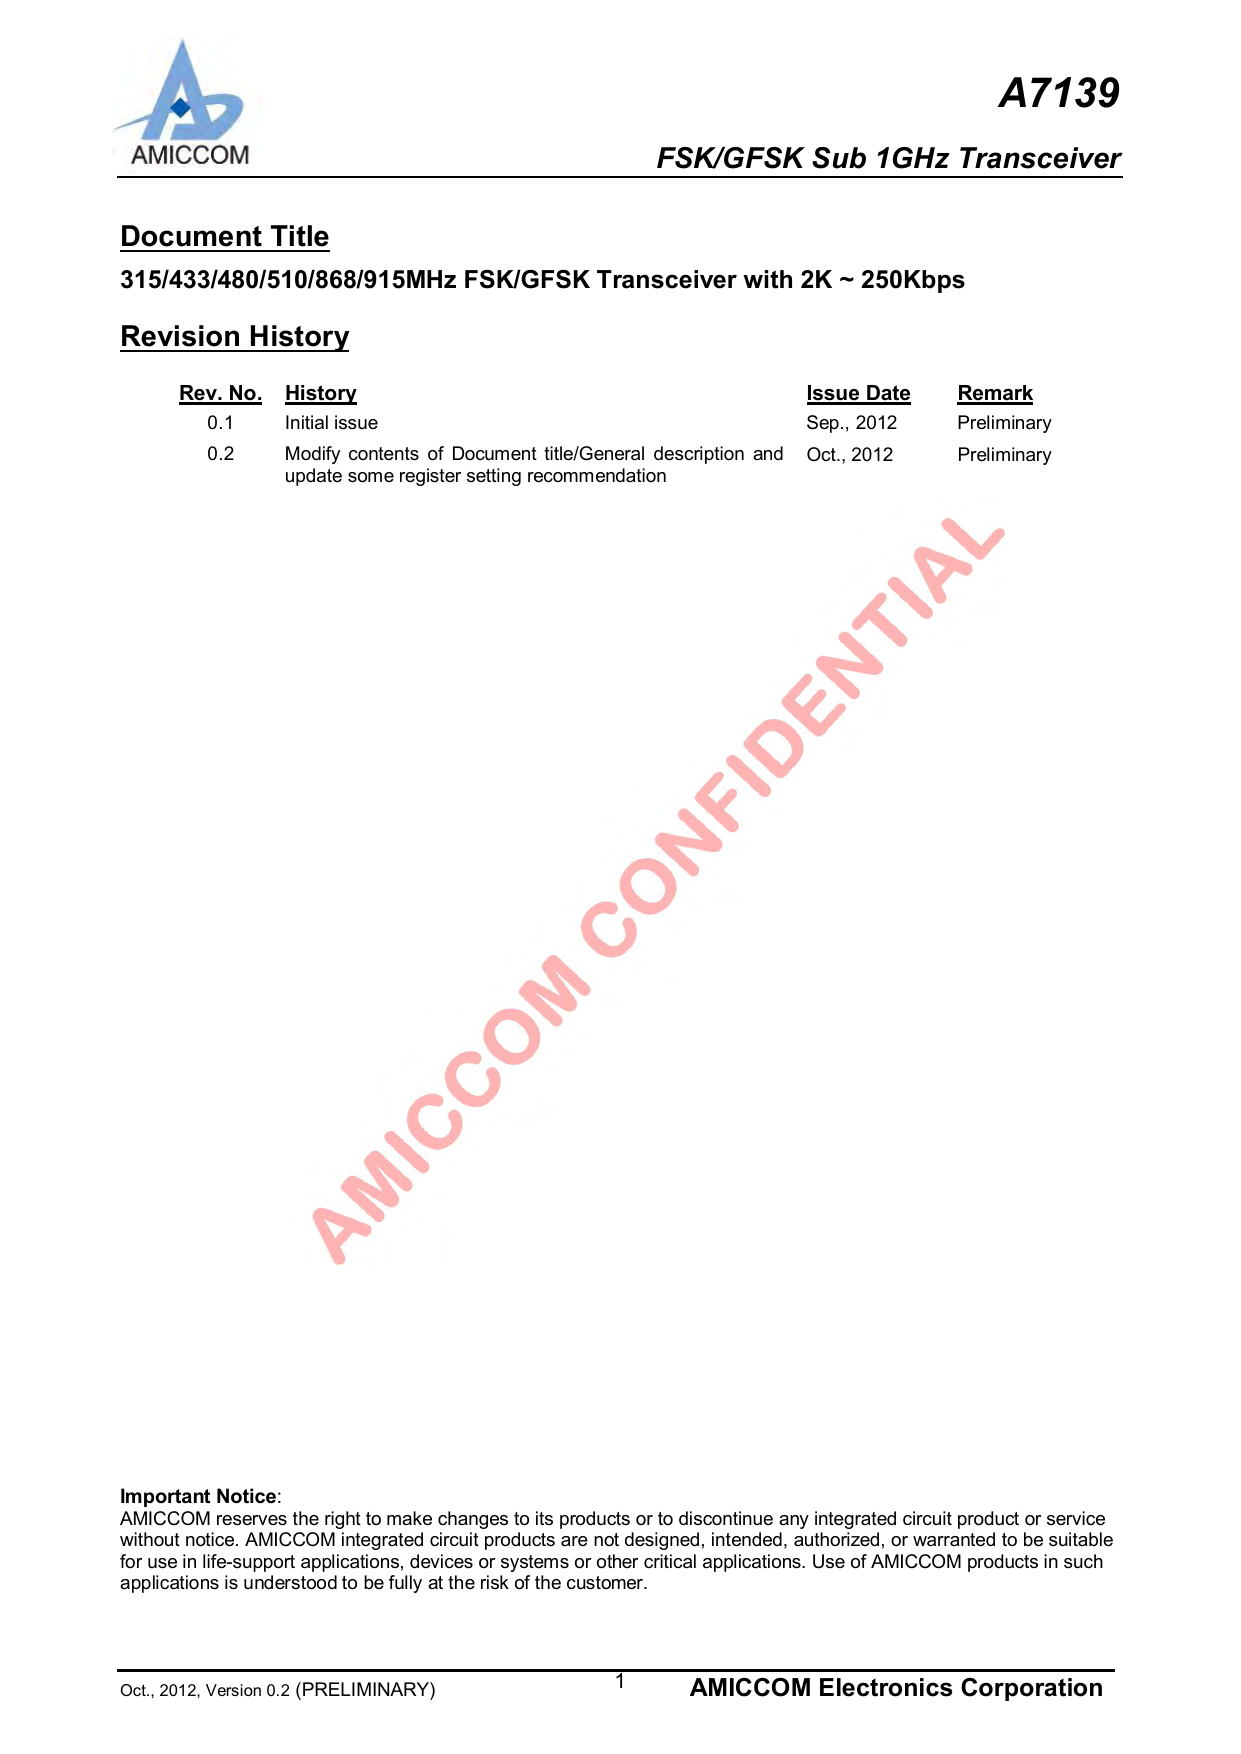 FSK/GFSK Sub 1GHz Transceiver Document Title Revision History